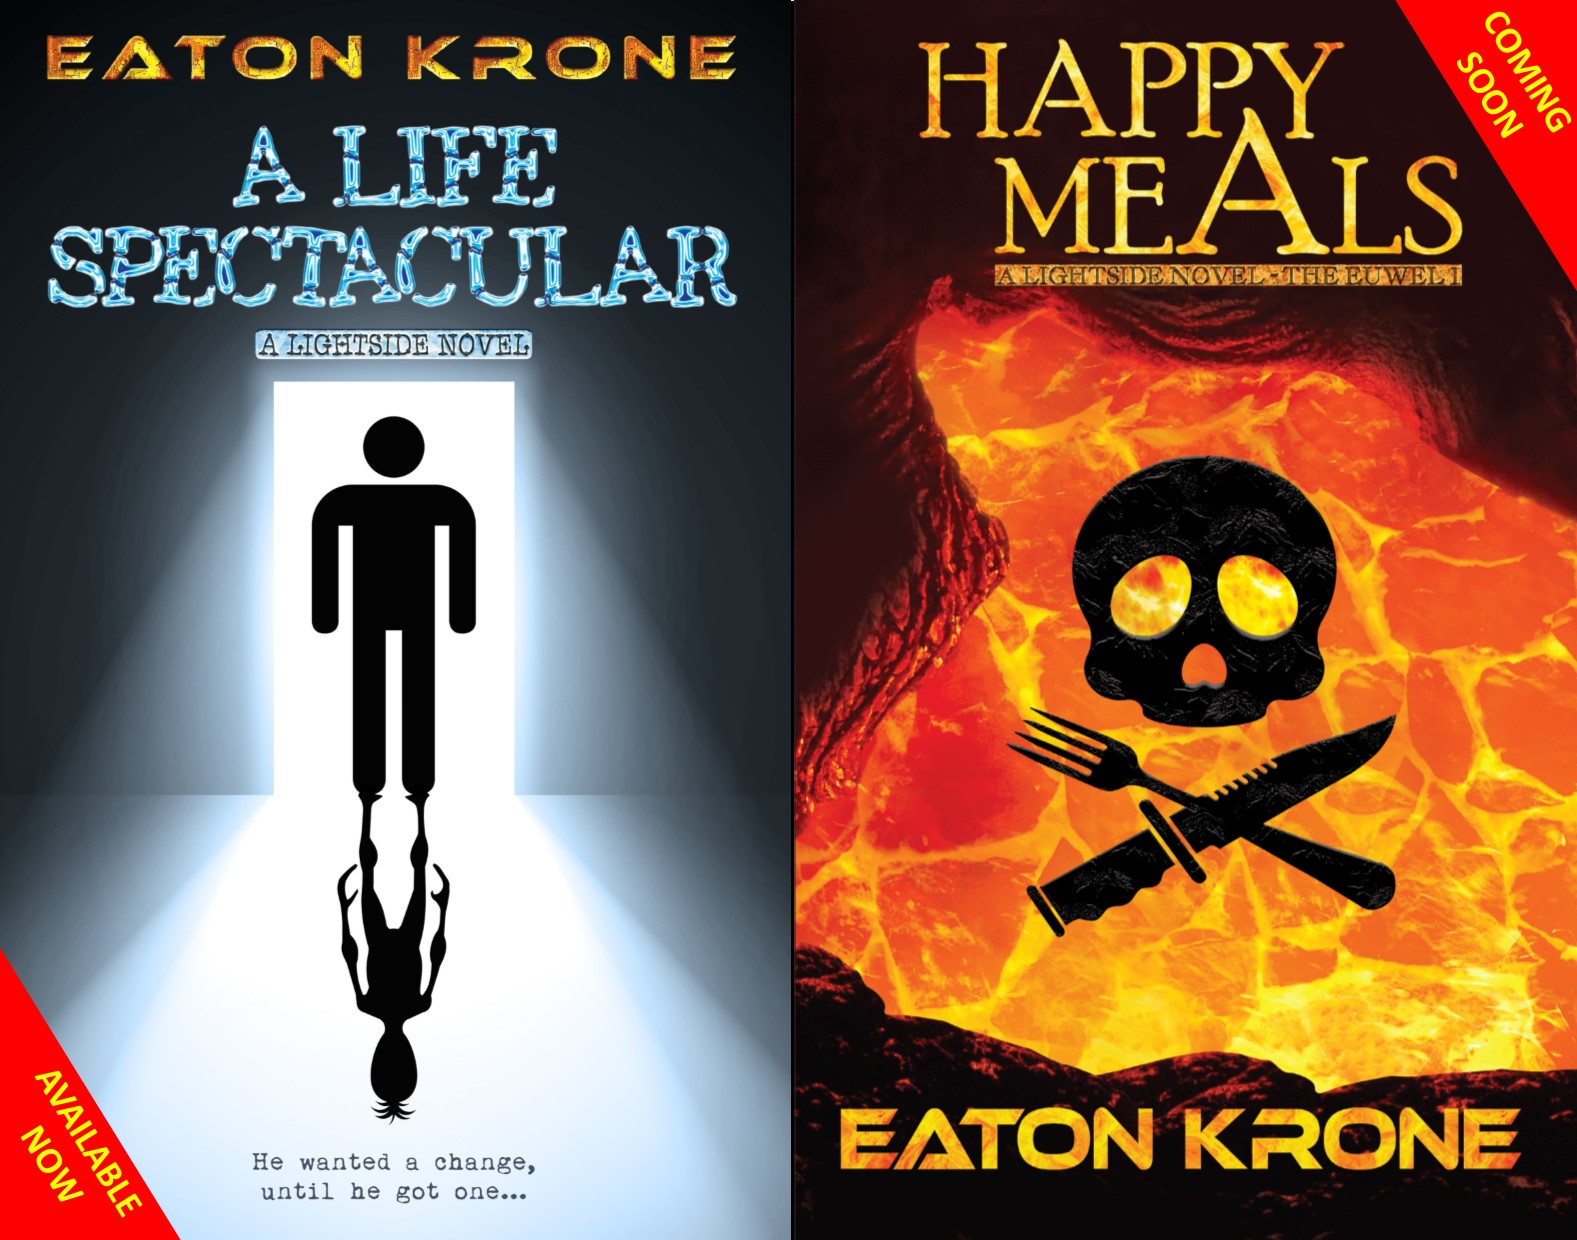 Eaton Krone_Sci-fi satire novels_A Life Spectacular & Happy Meals_NO Background_MED RES